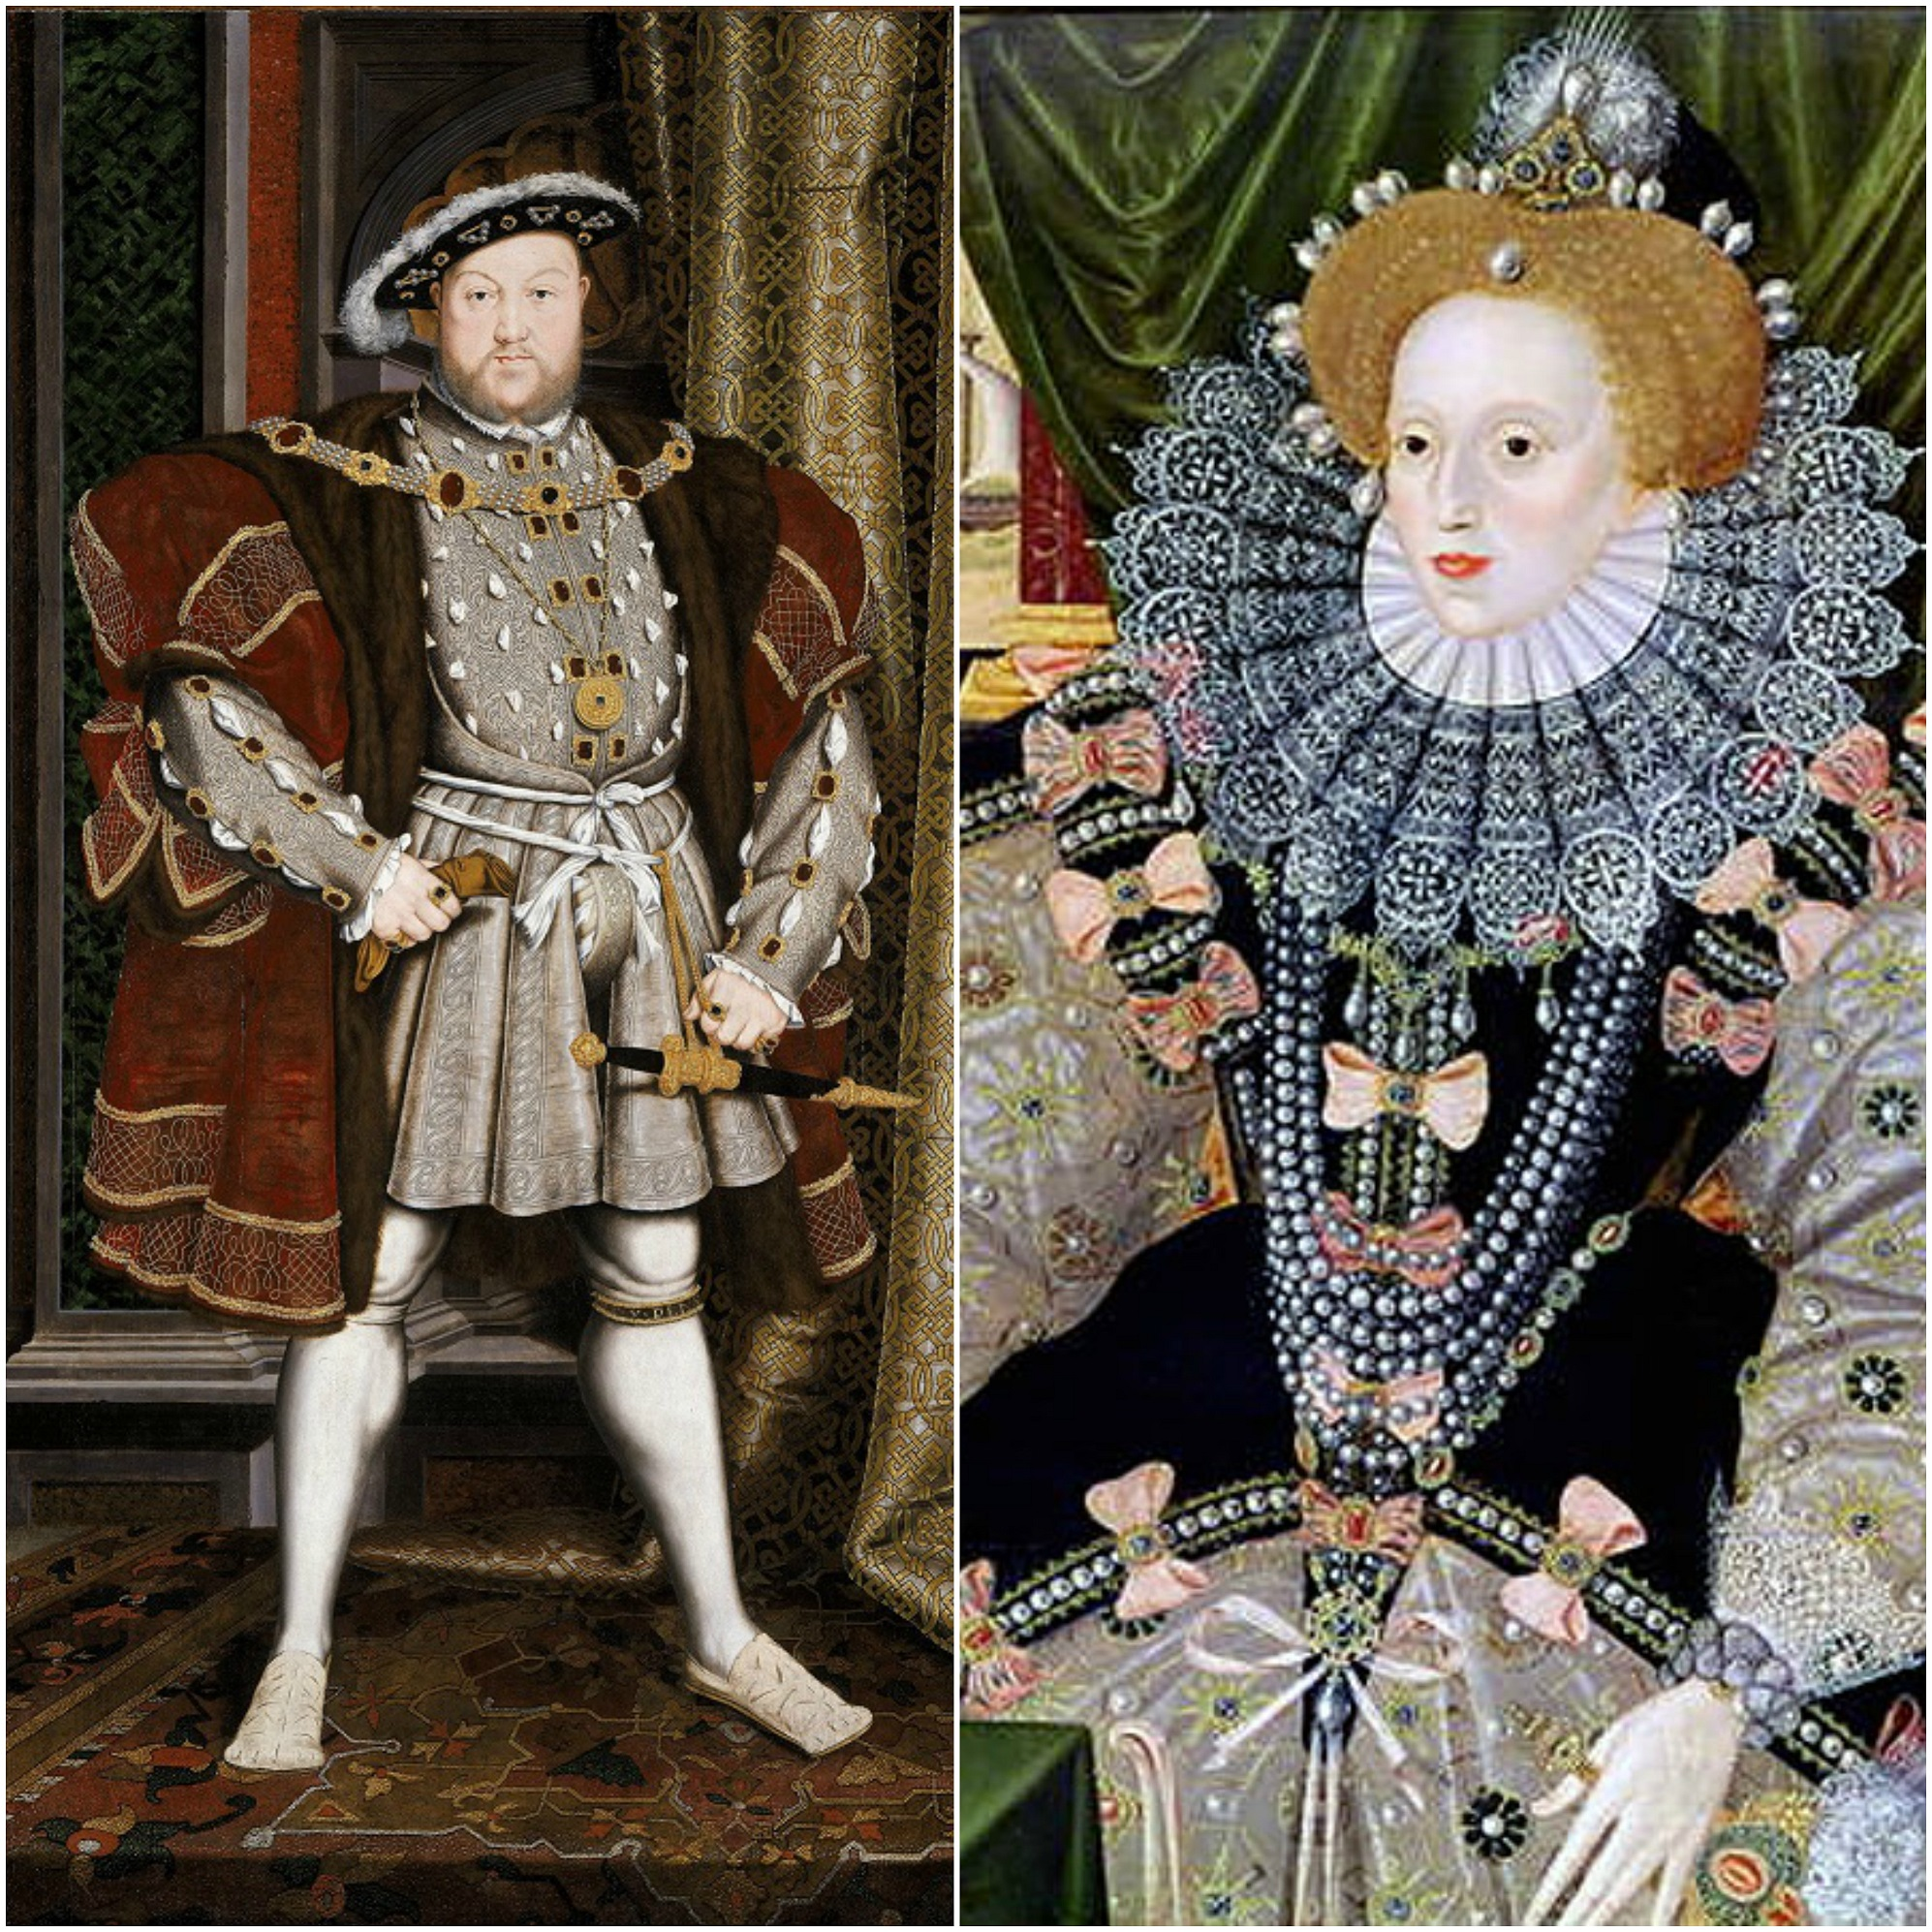 Henry VIII of England and his daughter Elizabeth I of England. Source: Google